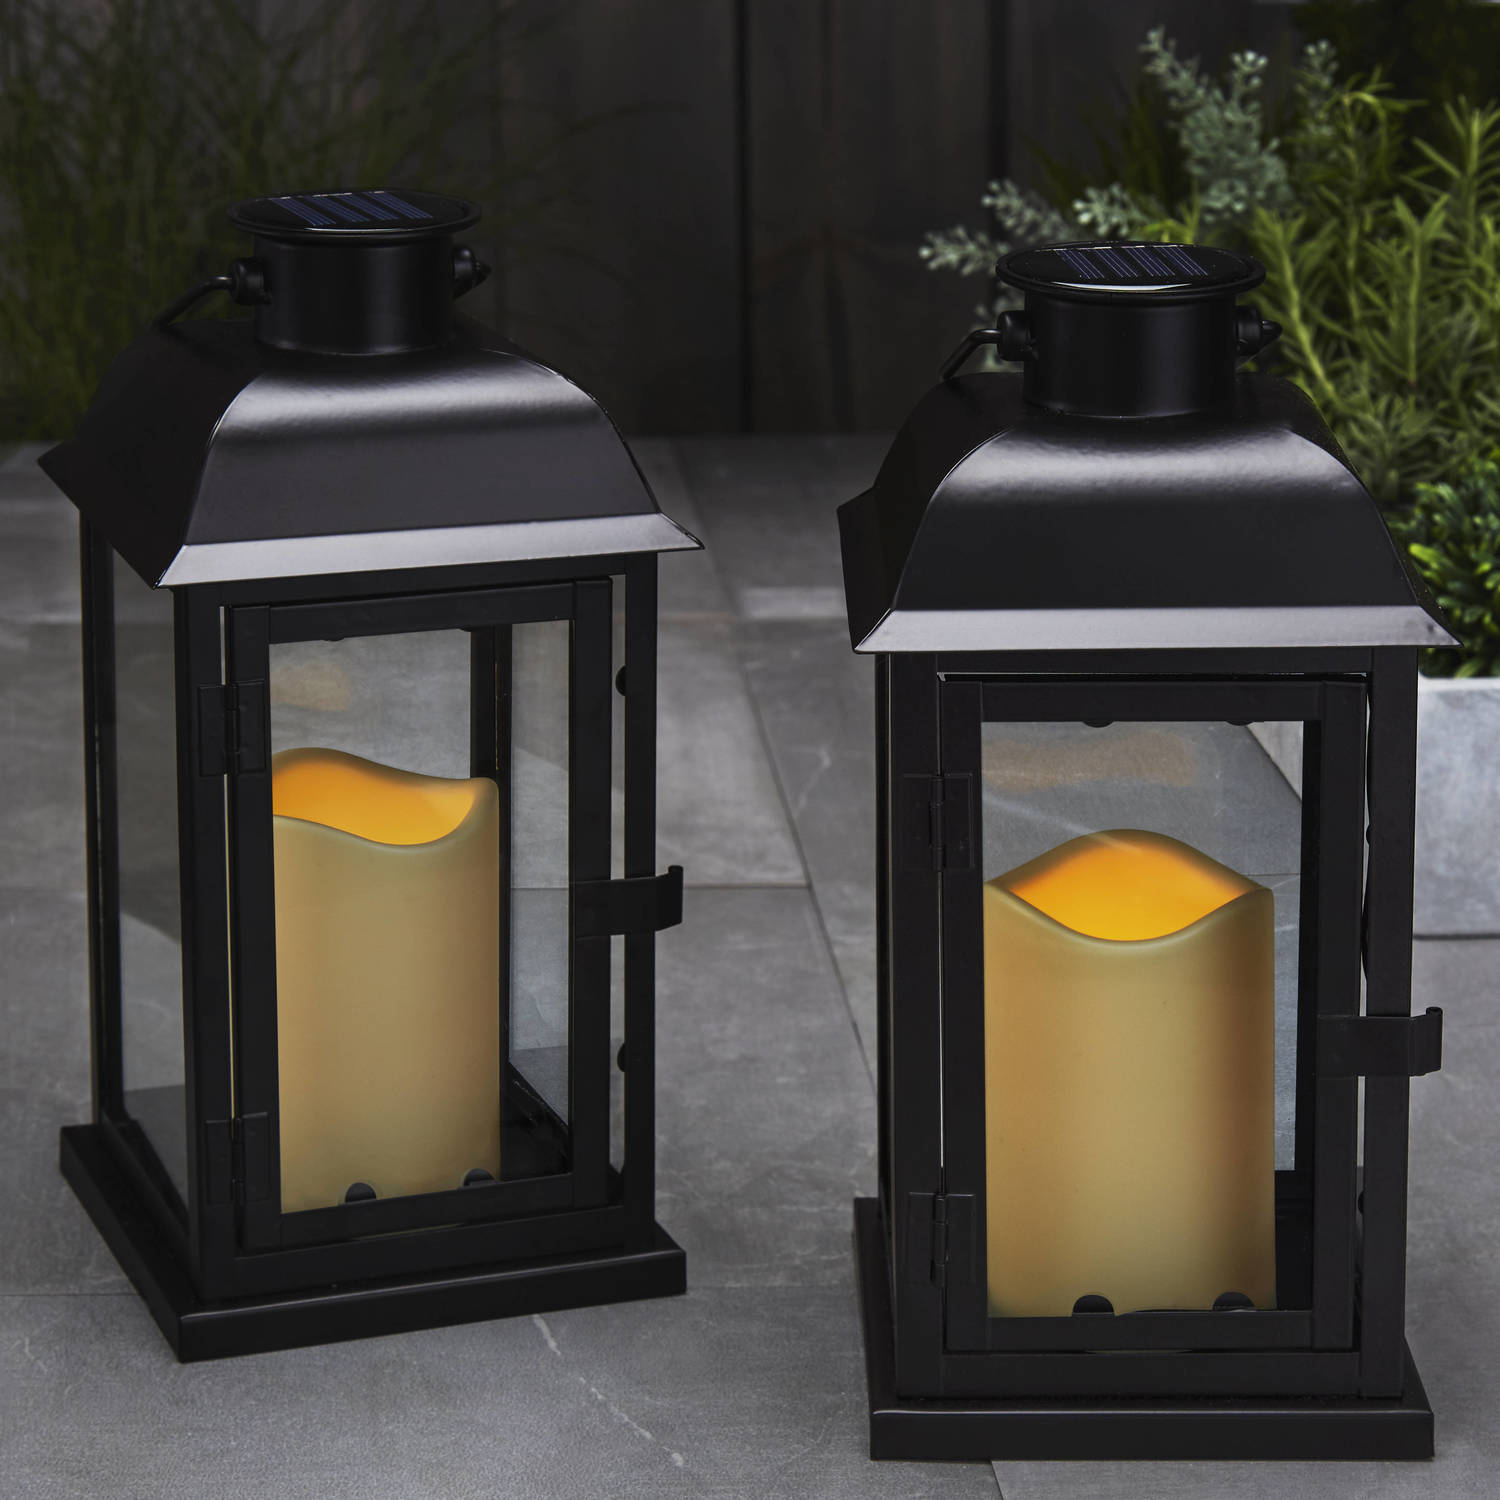 decorative outdoor lighting ideas html with Solar 11 Black Metal Flameless Lantern Set Of 2 P 37675 on Connecticut Pool Pavilion Contemporary Pool Other Metro likewise Hillside Landscaping furthermore Cheap Fencing together with 05bc9d37257481d5 as well Landscape Rocks And Stones.